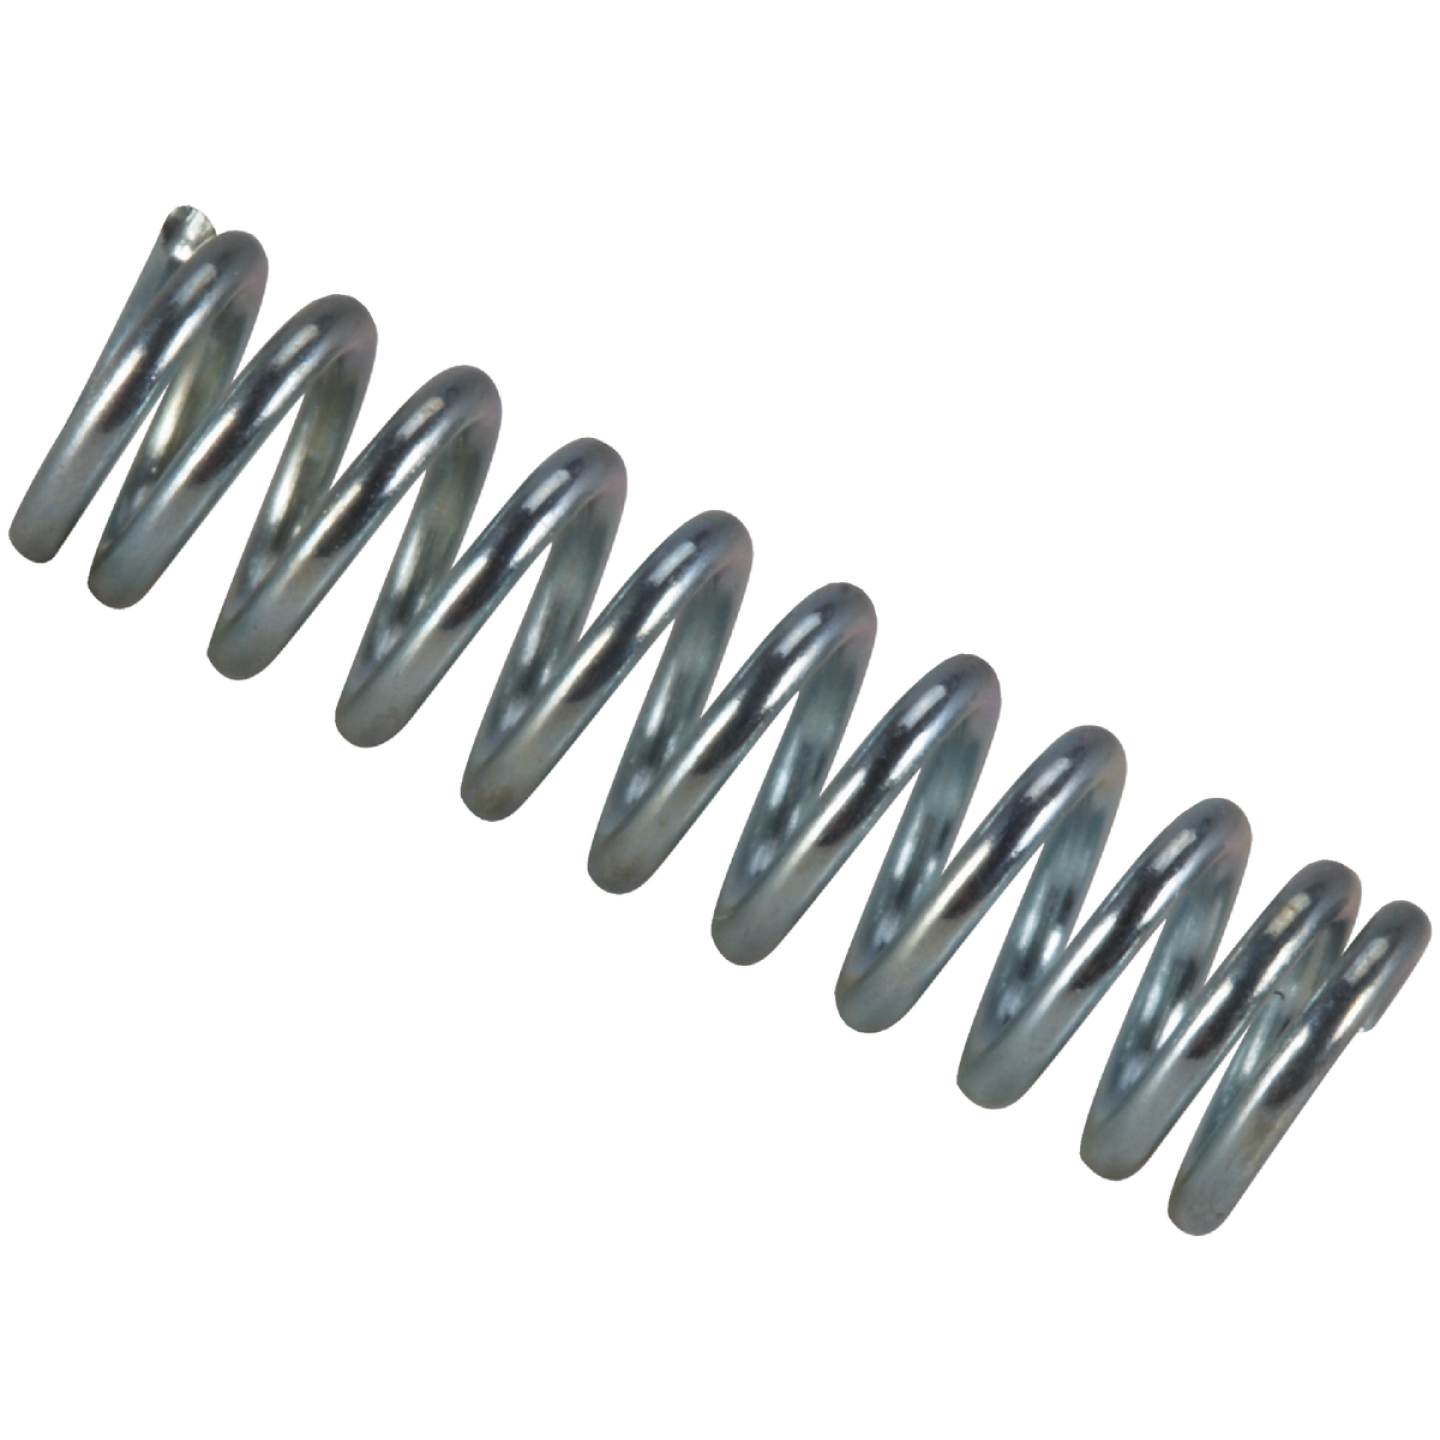 Century Spring 6 In. x 7/8 In. Compression Spring (1 Count) Image 1